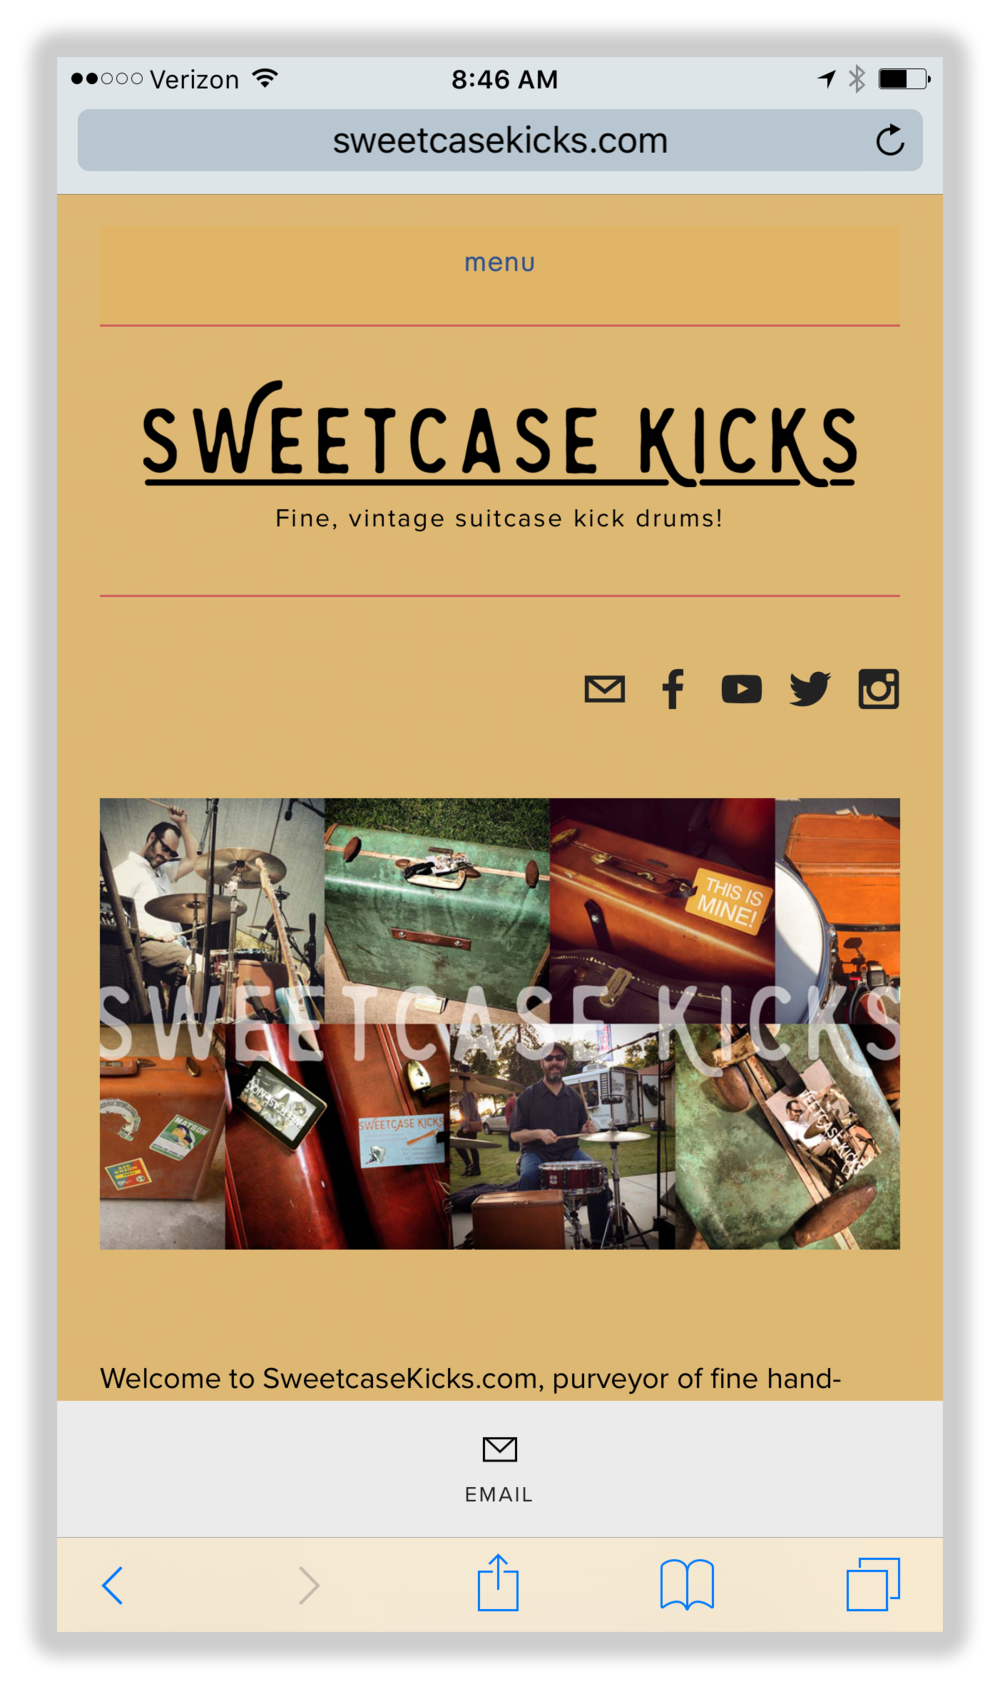 the-chatter-box-guys-web-design-sweetcase-kicks-mobile.png